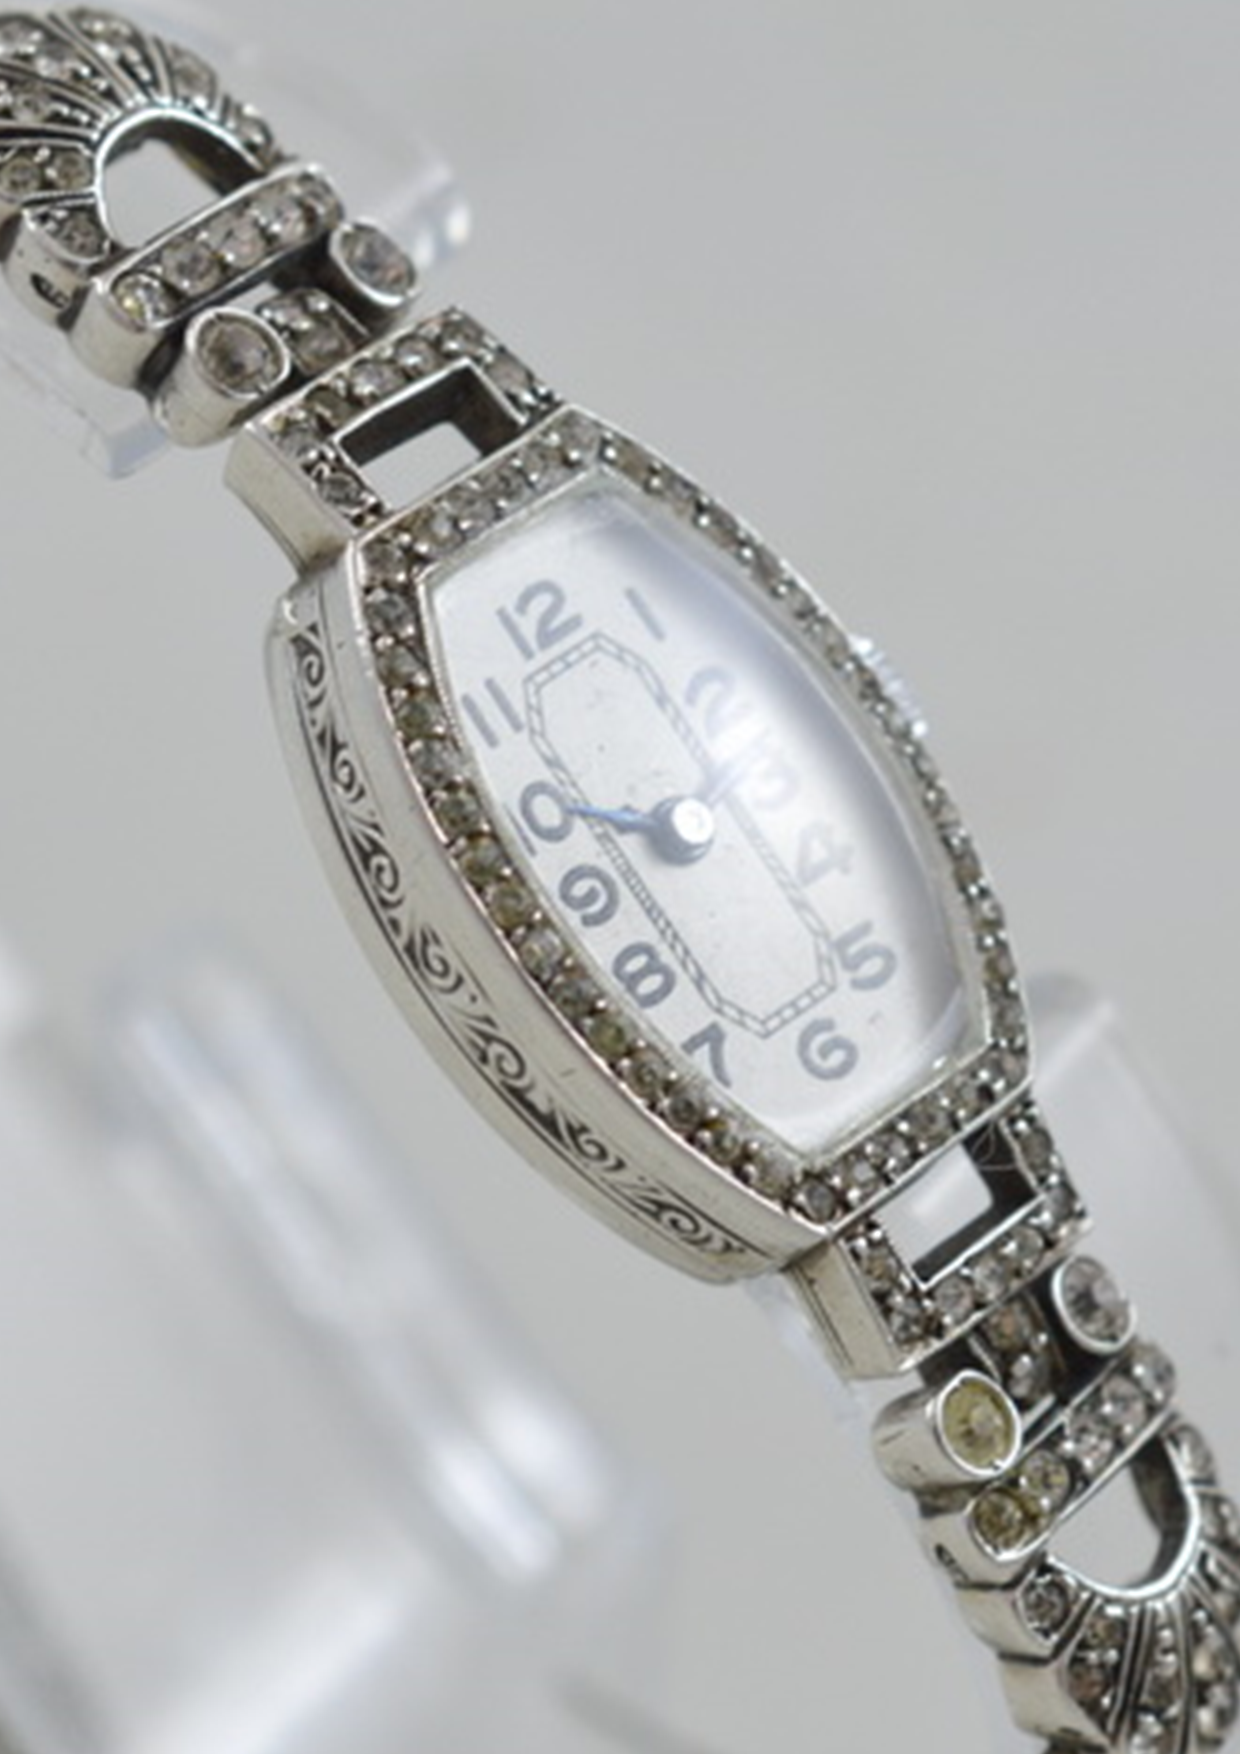 Ladies Watches by Kembery Antique Clocks Ltd